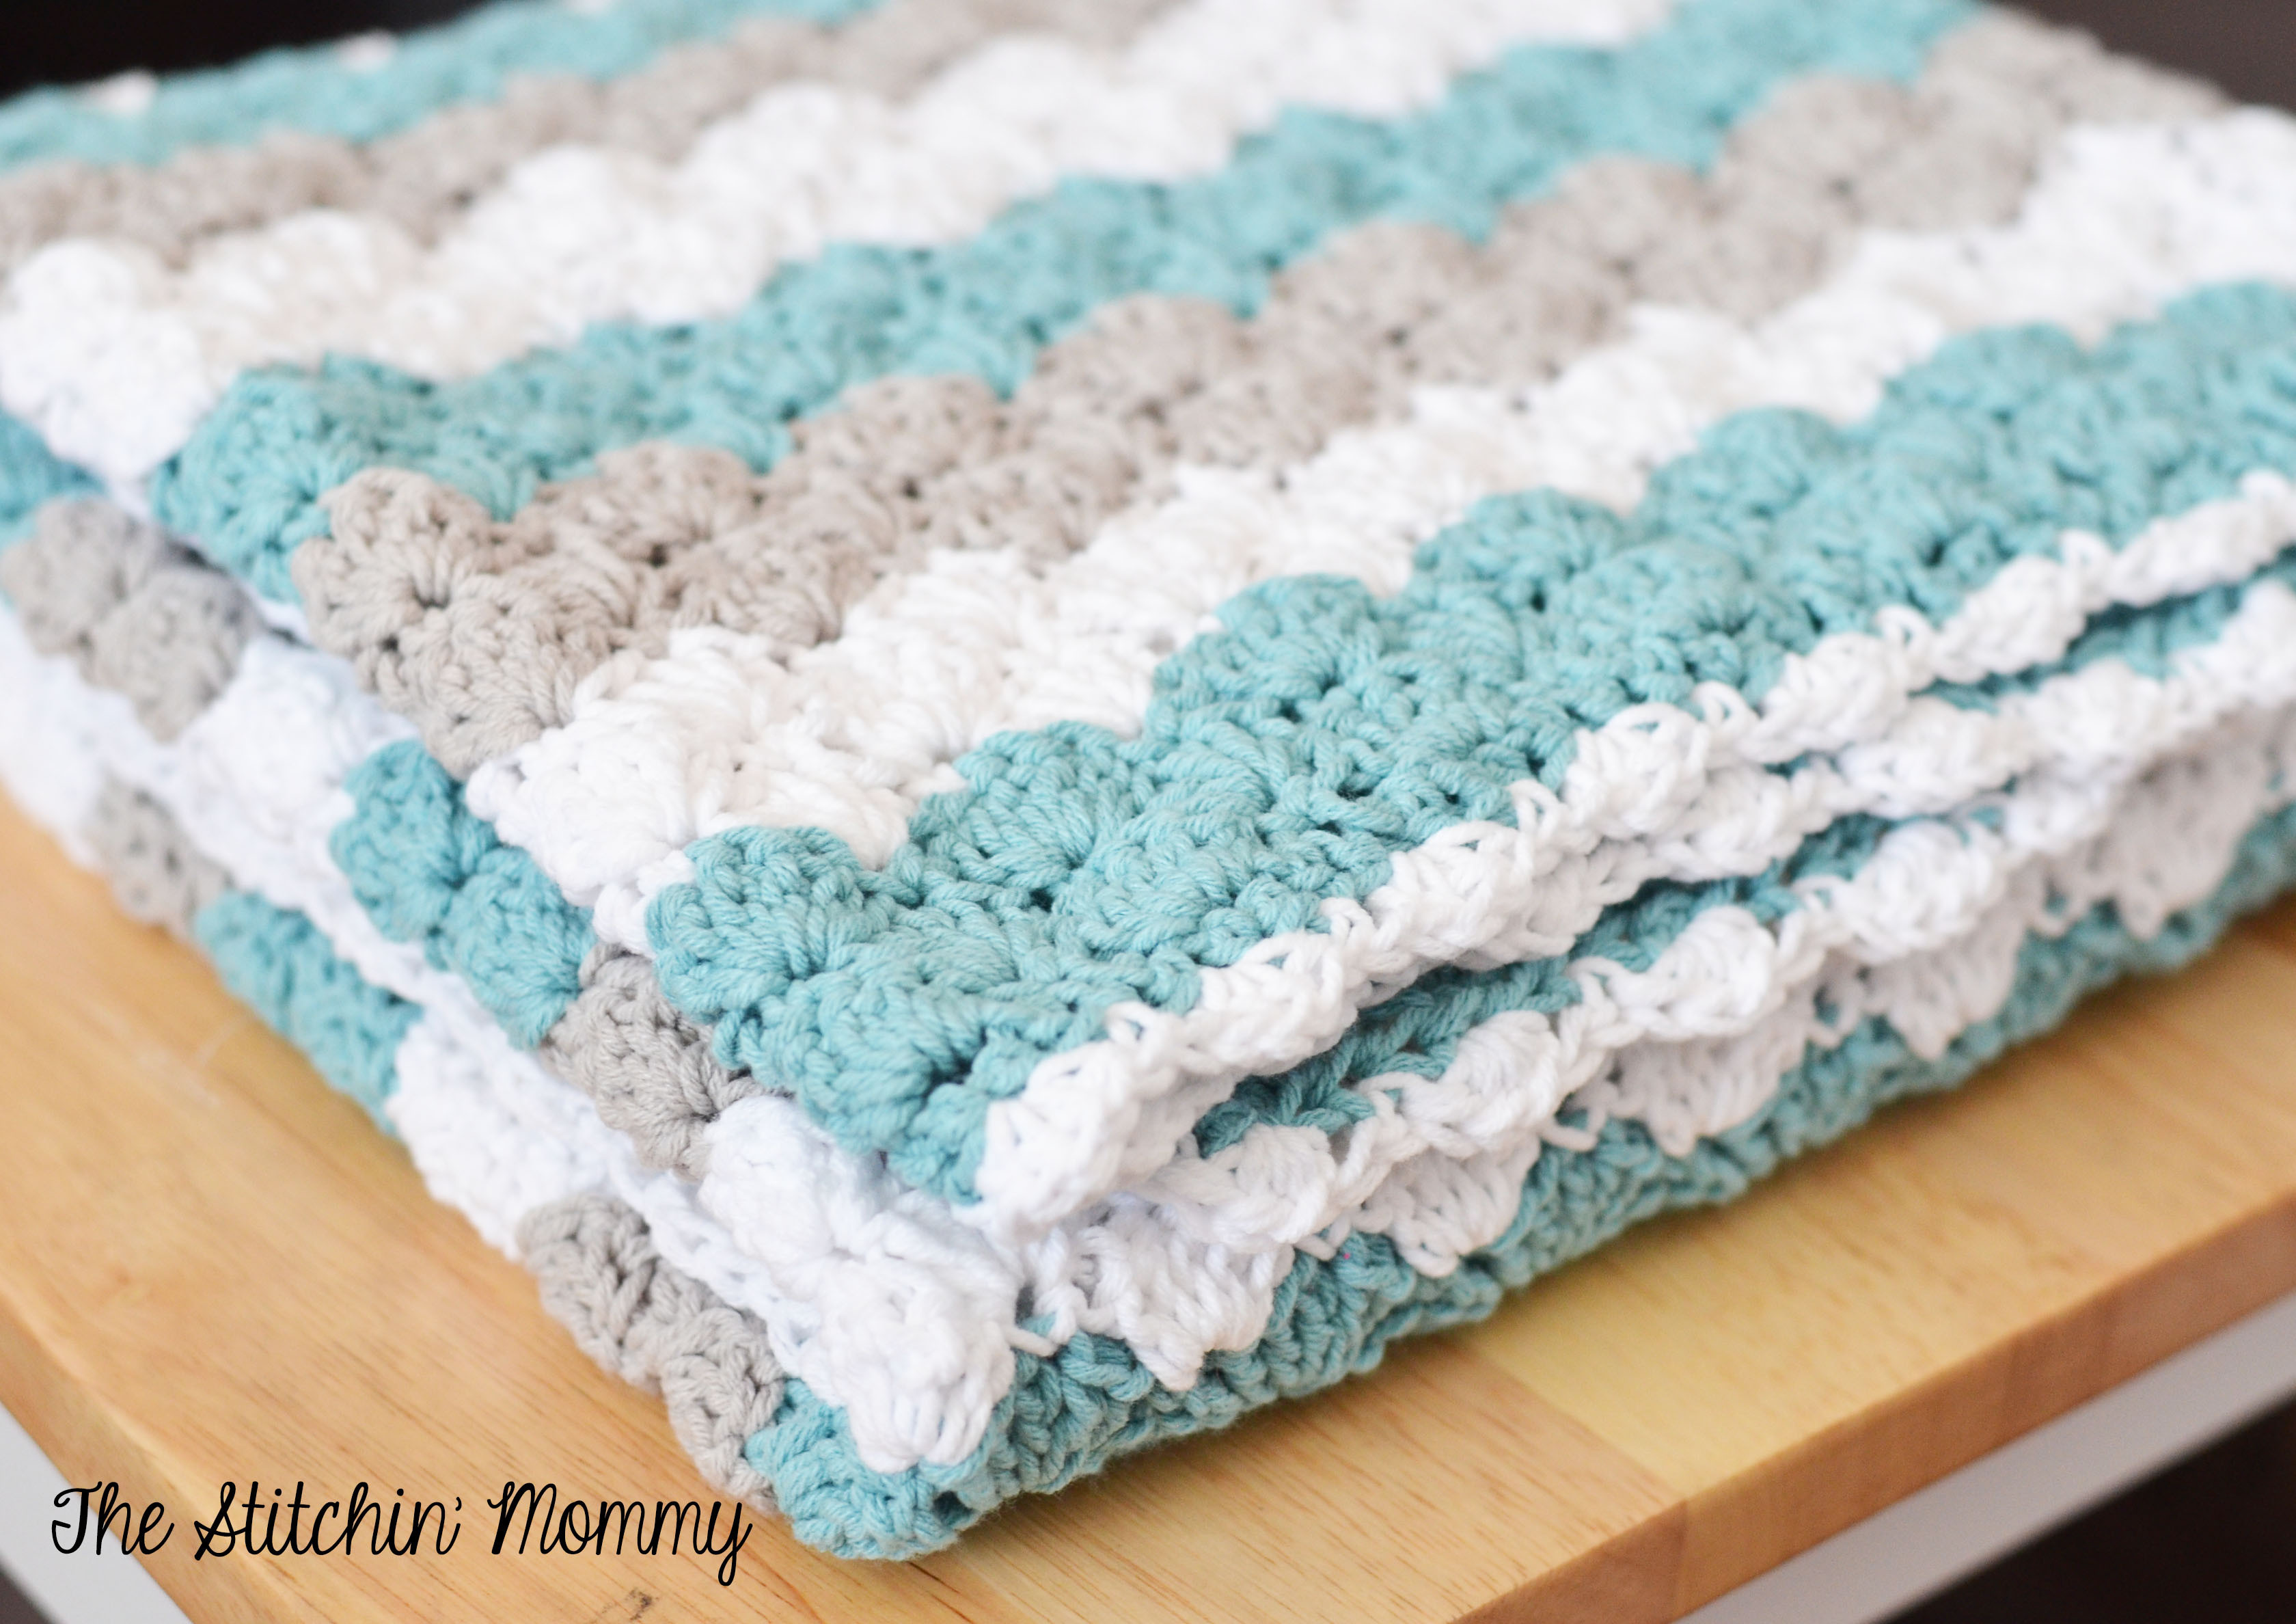 Crochet Stitches for Baby Blankets Lovely Shell Stitch Baby Blanket Free Pattern Of Amazing 45 Pics Crochet Stitches for Baby Blankets